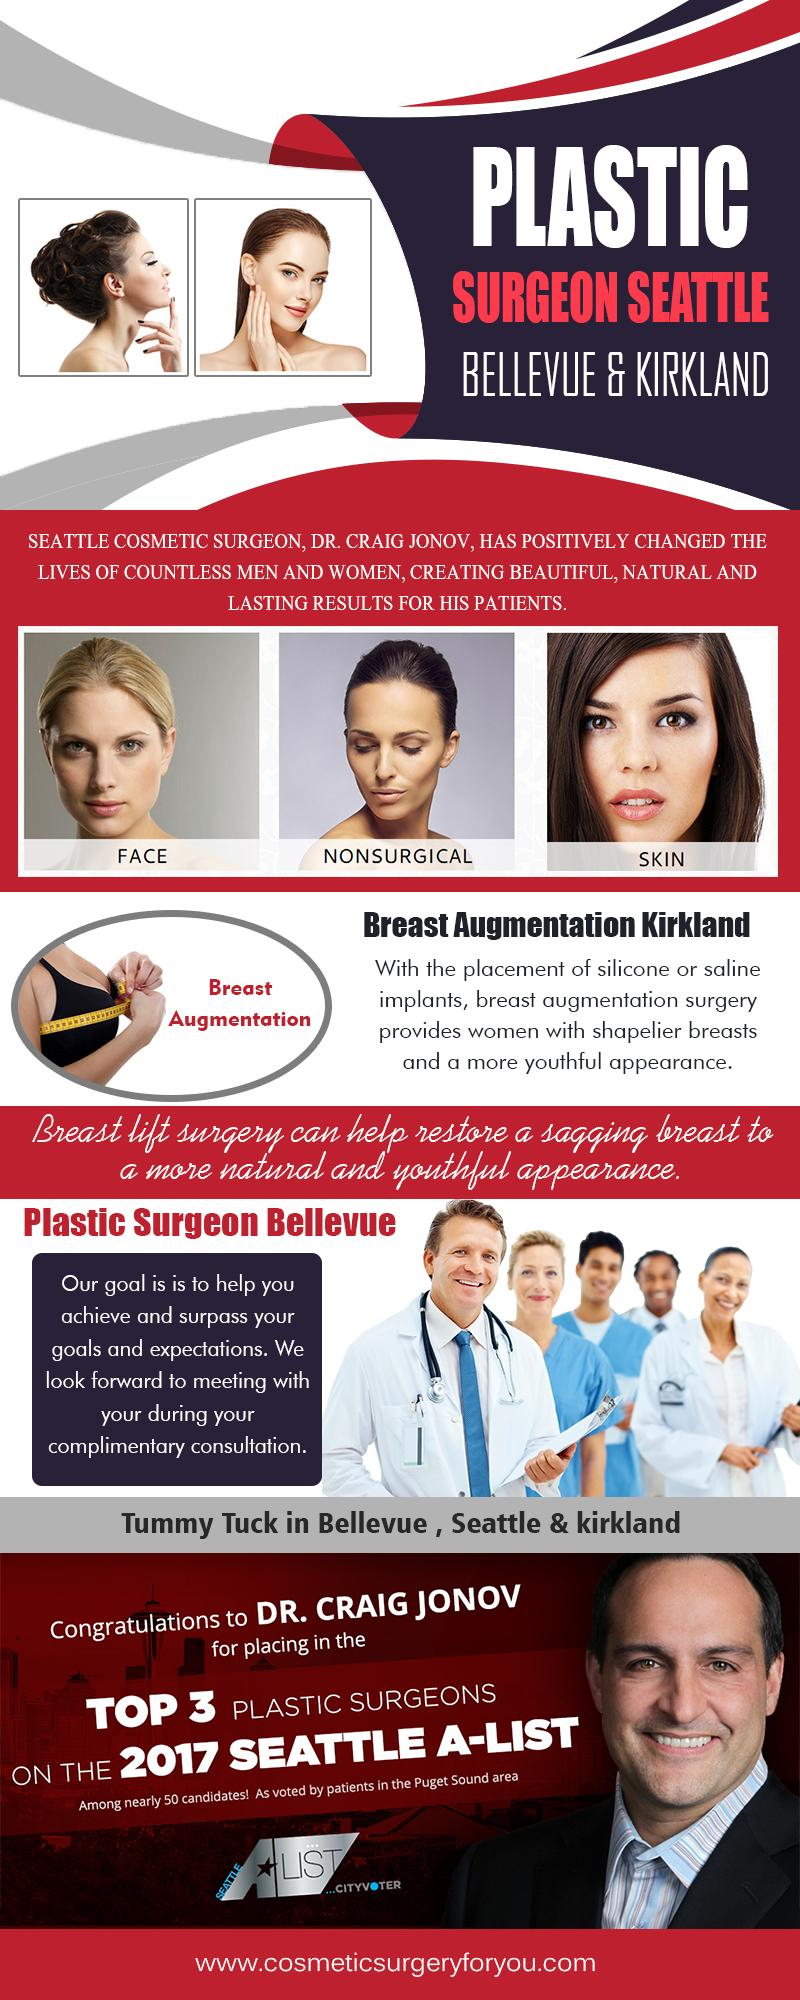 Plastic Surgeon Seattle , Bellevue & Kirkland